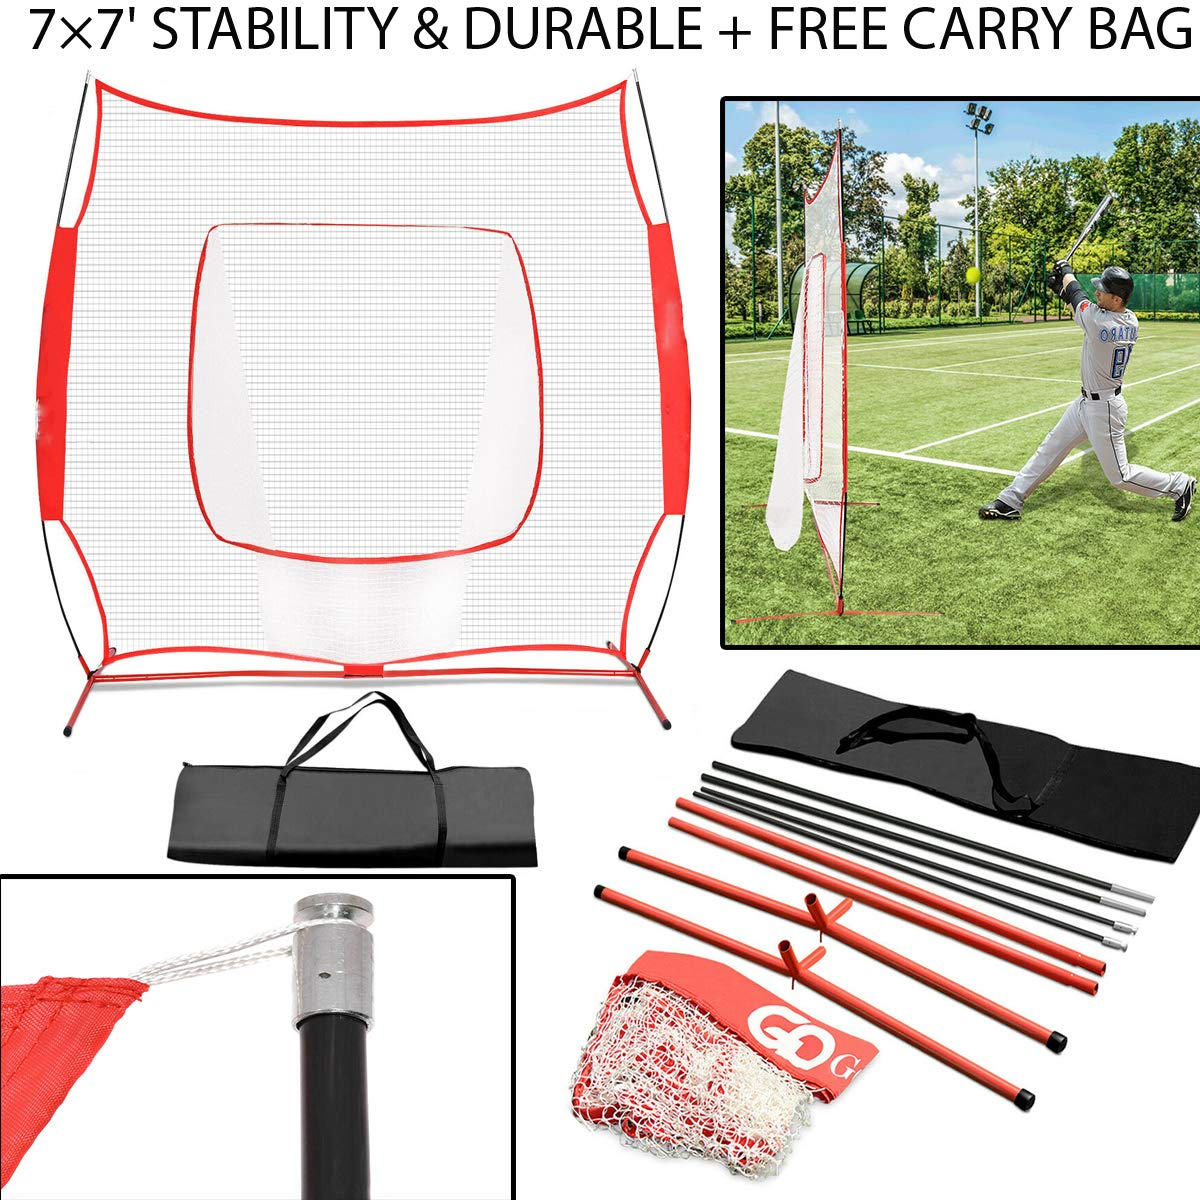 7×7' Stability & Durable Baseball Softball Practice Hitting Batting Training Net Bow Thicker & Tear Resistant Netting with Carry Bag for Practice Hitting, Fielding, Pitching, Soft Toss, Tee Ball by Sunnady